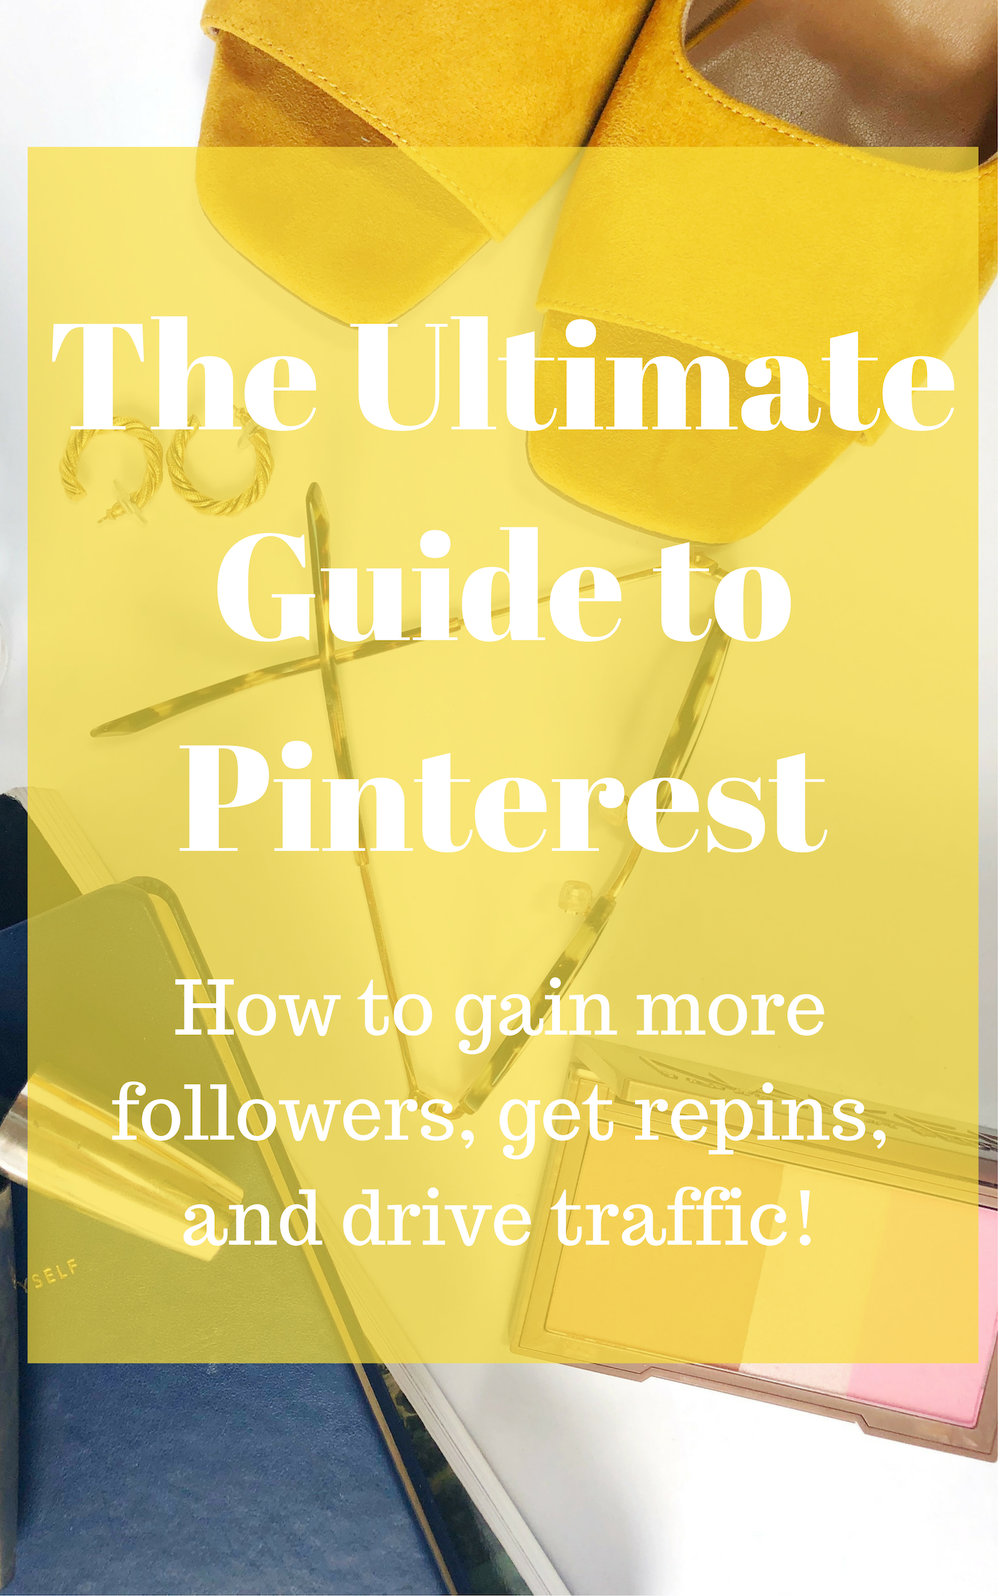 The Ultimate Guide to Pinterest, how to grow your following, get repins, and drive traffic to your blog with pinterest